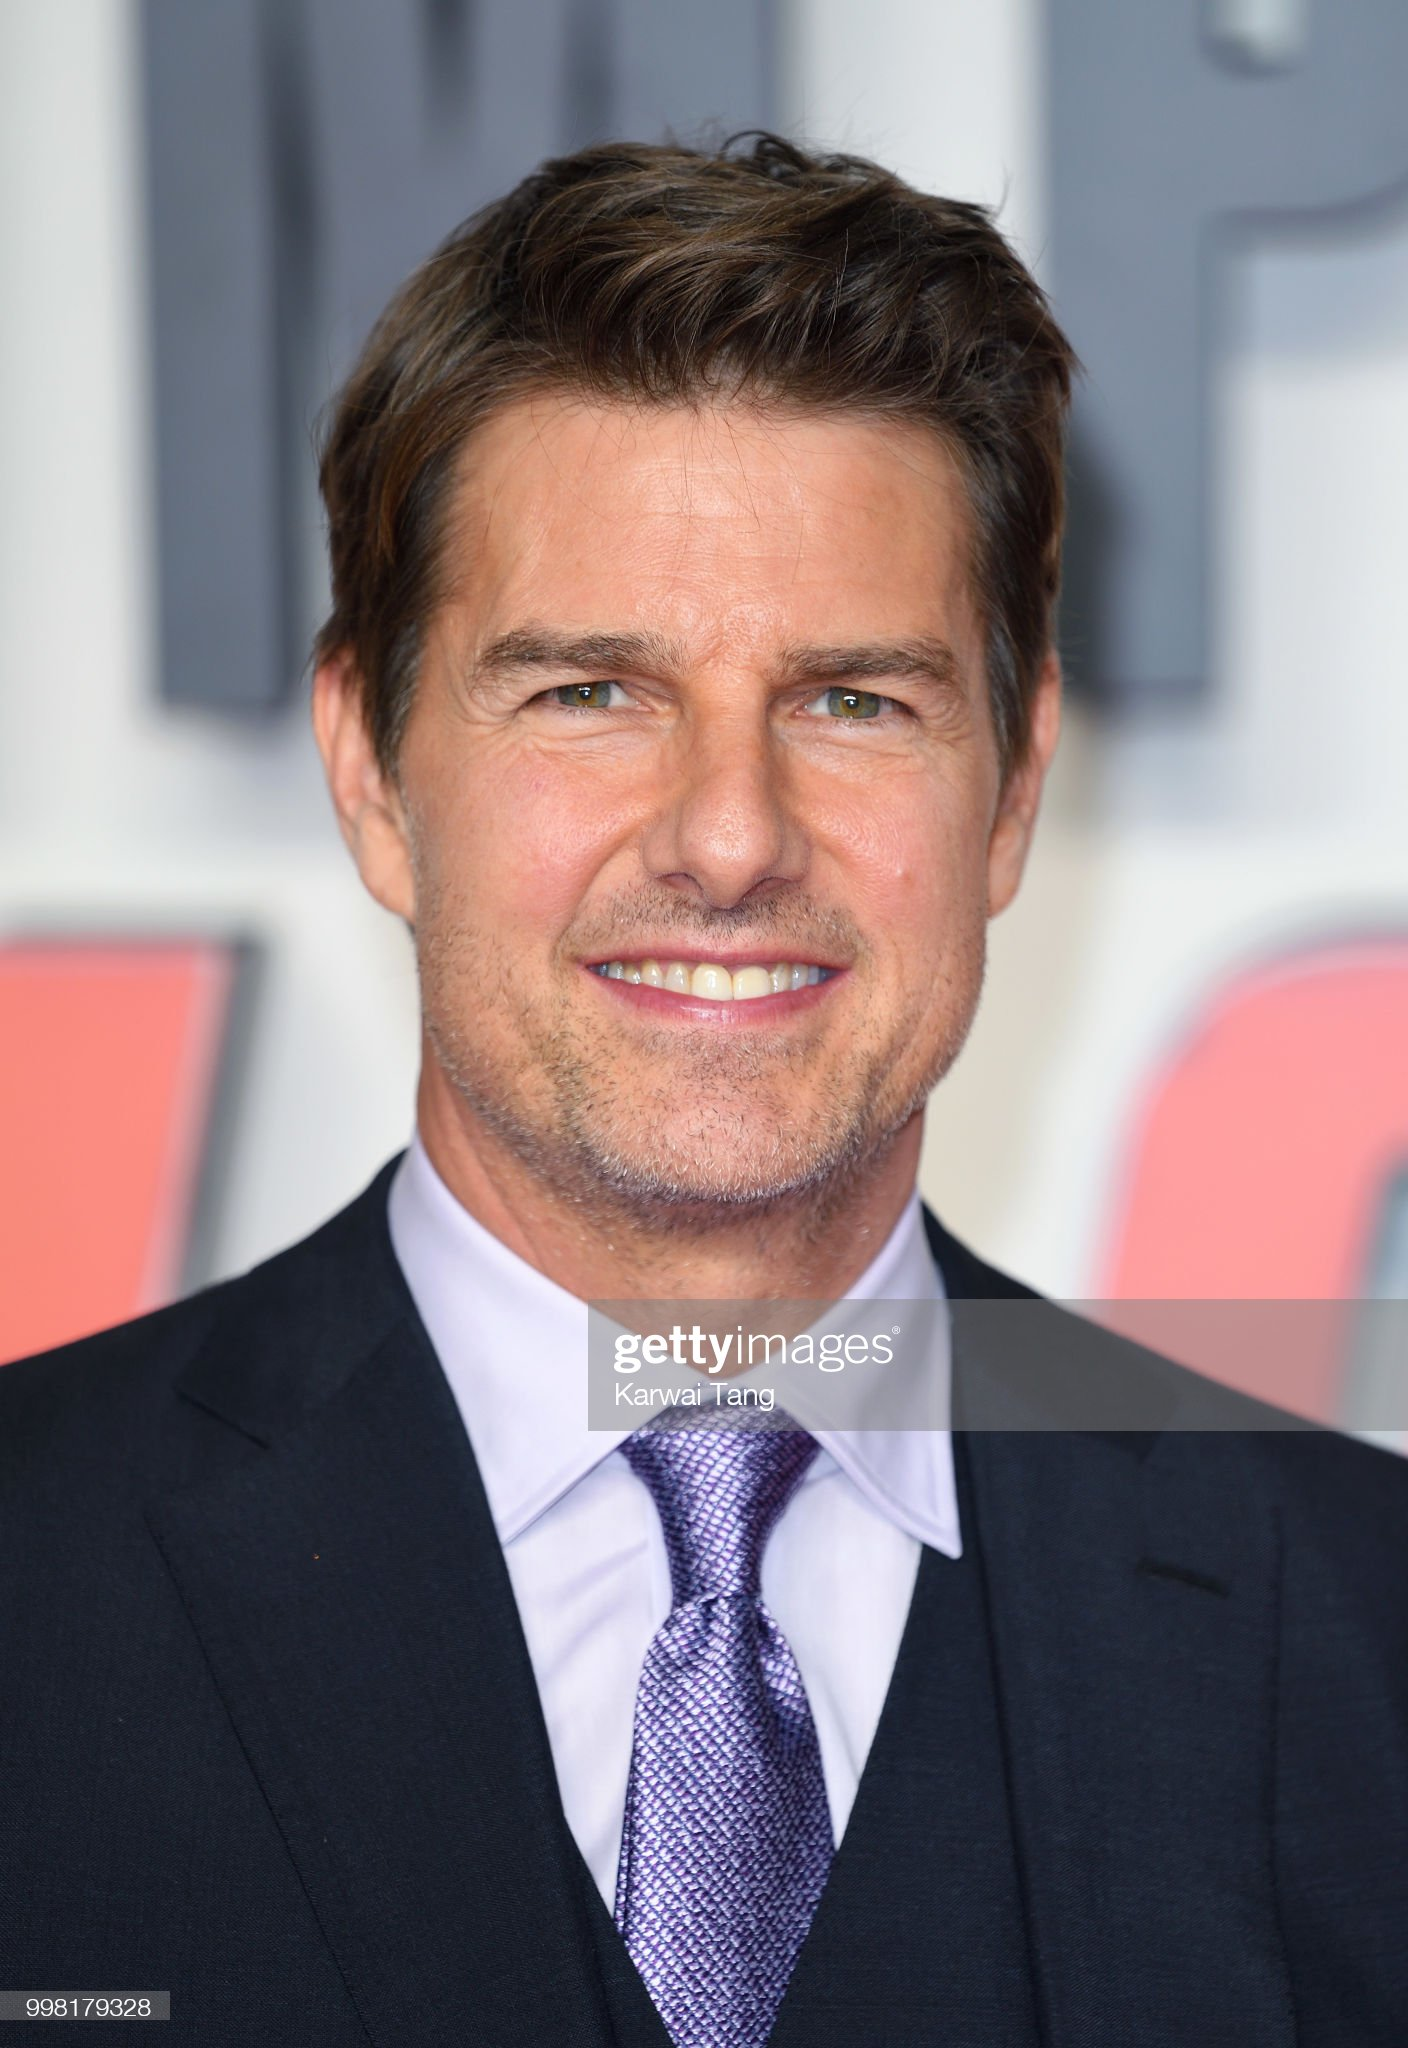 Tom Cruise (Galería de fotos) Tom-cruise-attends-the-uk-premiere-of-mission-impossible-fallout-at-picture-id998179328?s=2048x2048